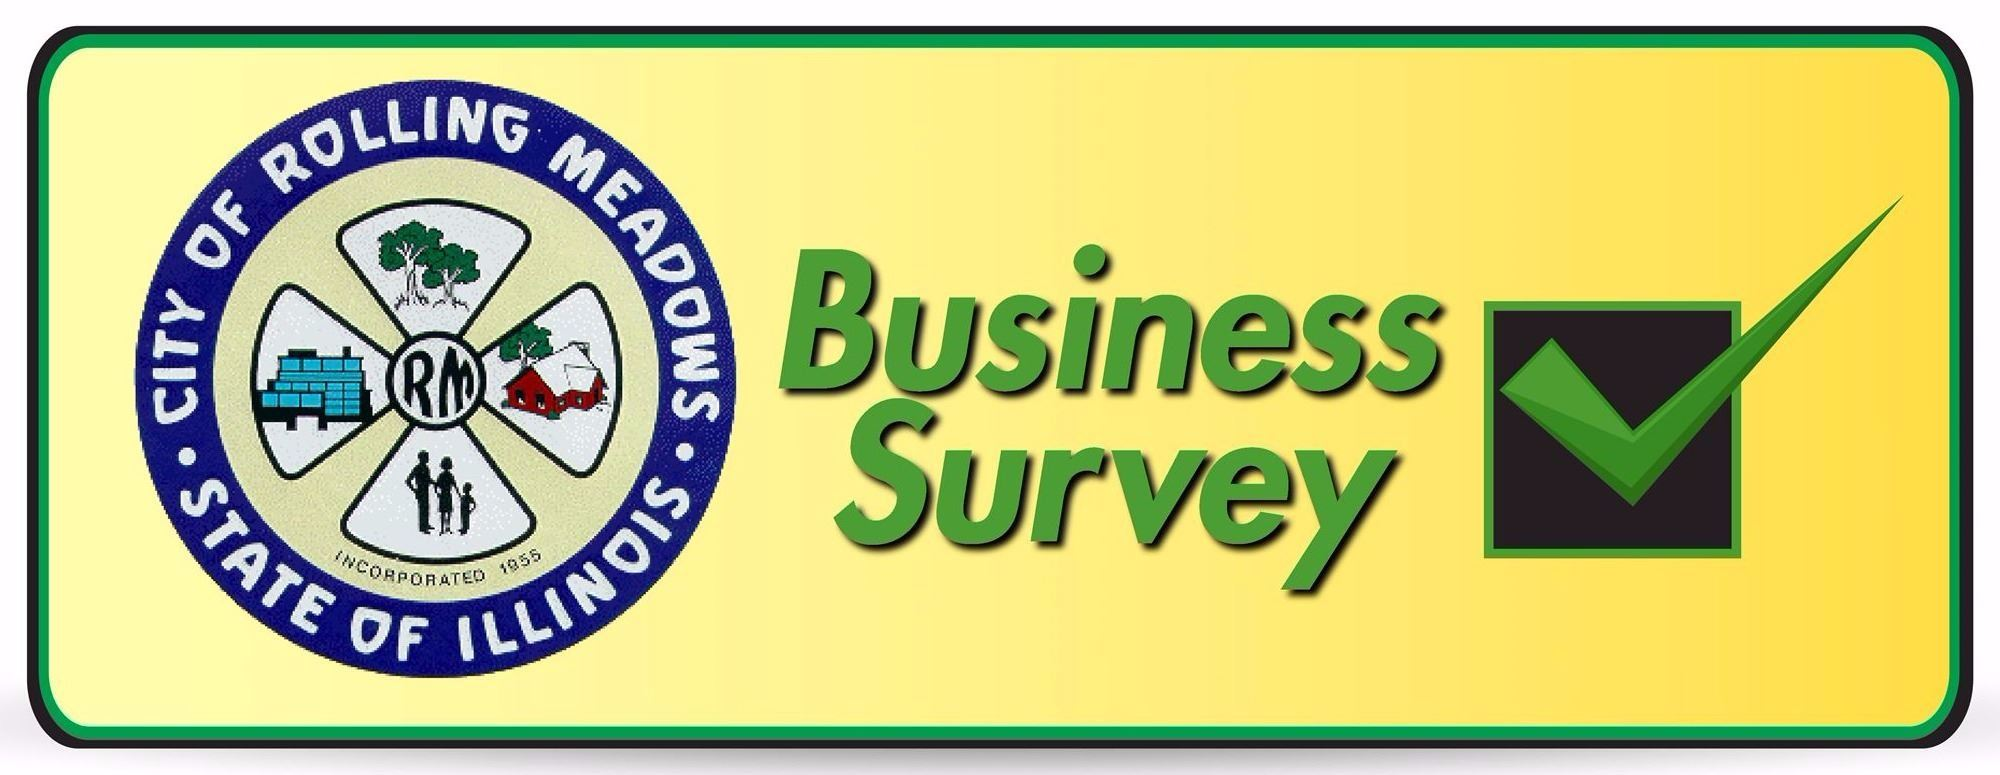 CityRM Business Survey